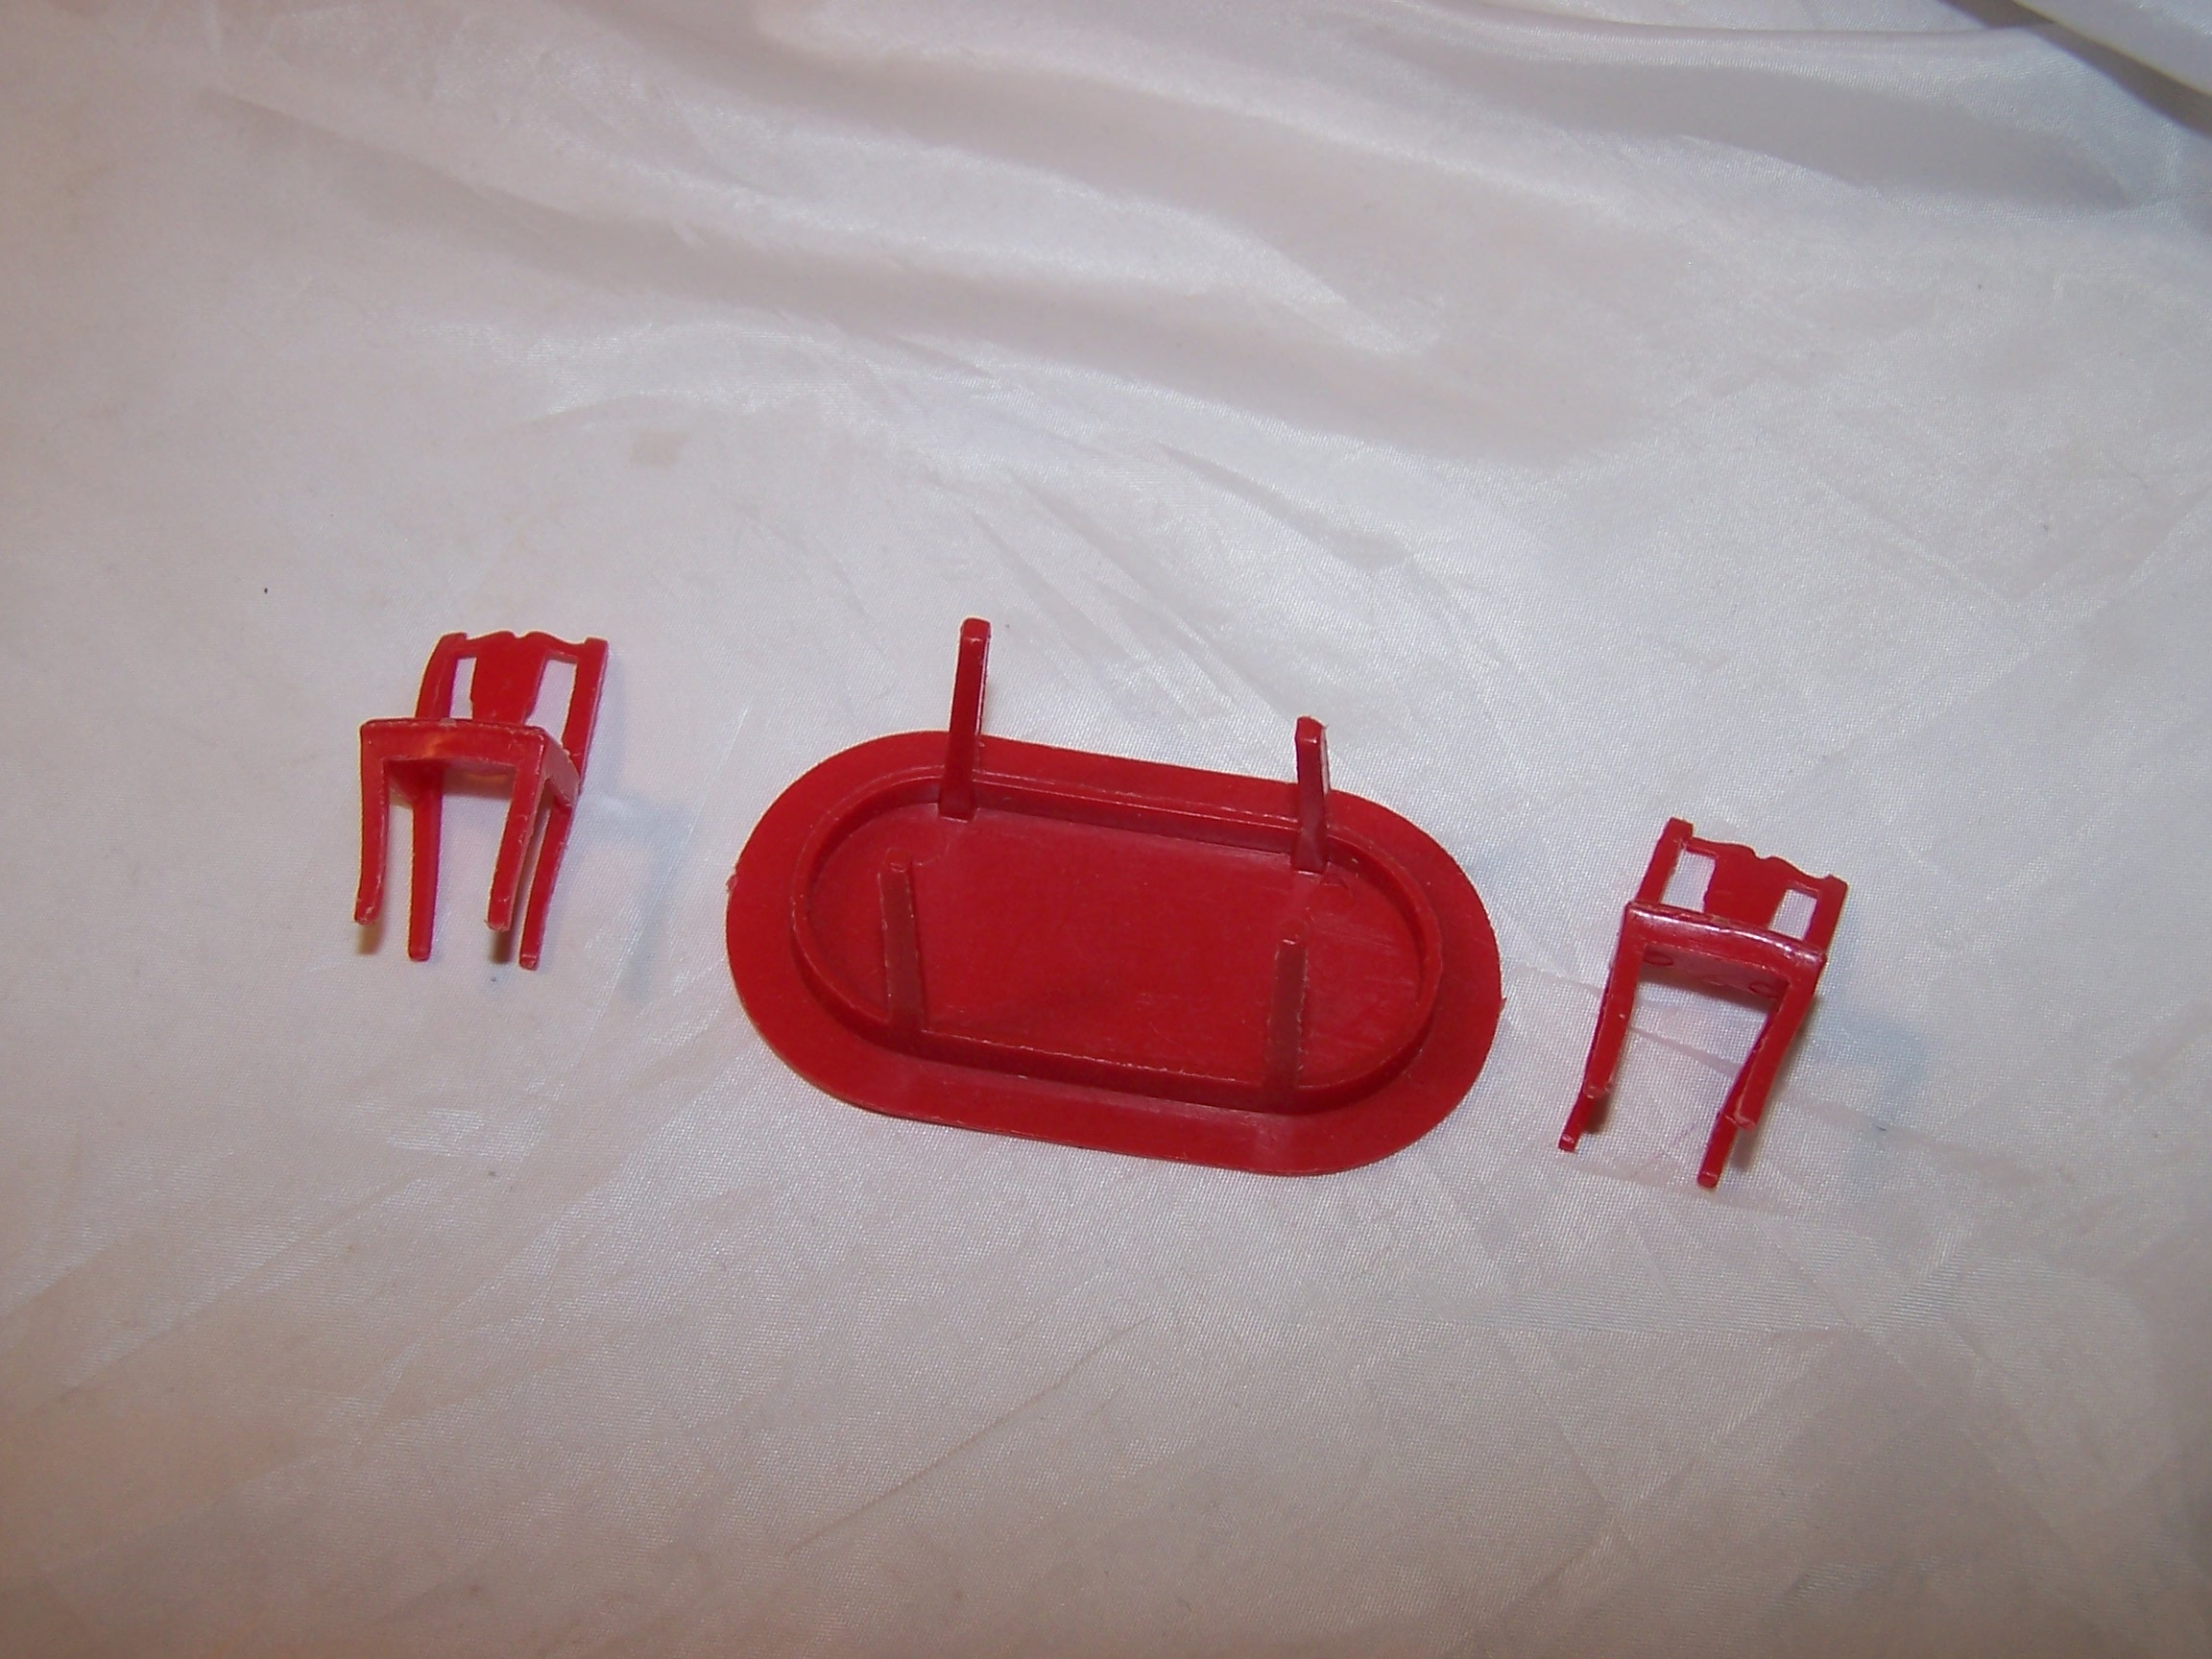 Image 2 of Dollhouse Table and Chairs, Red Plastic, Vintage